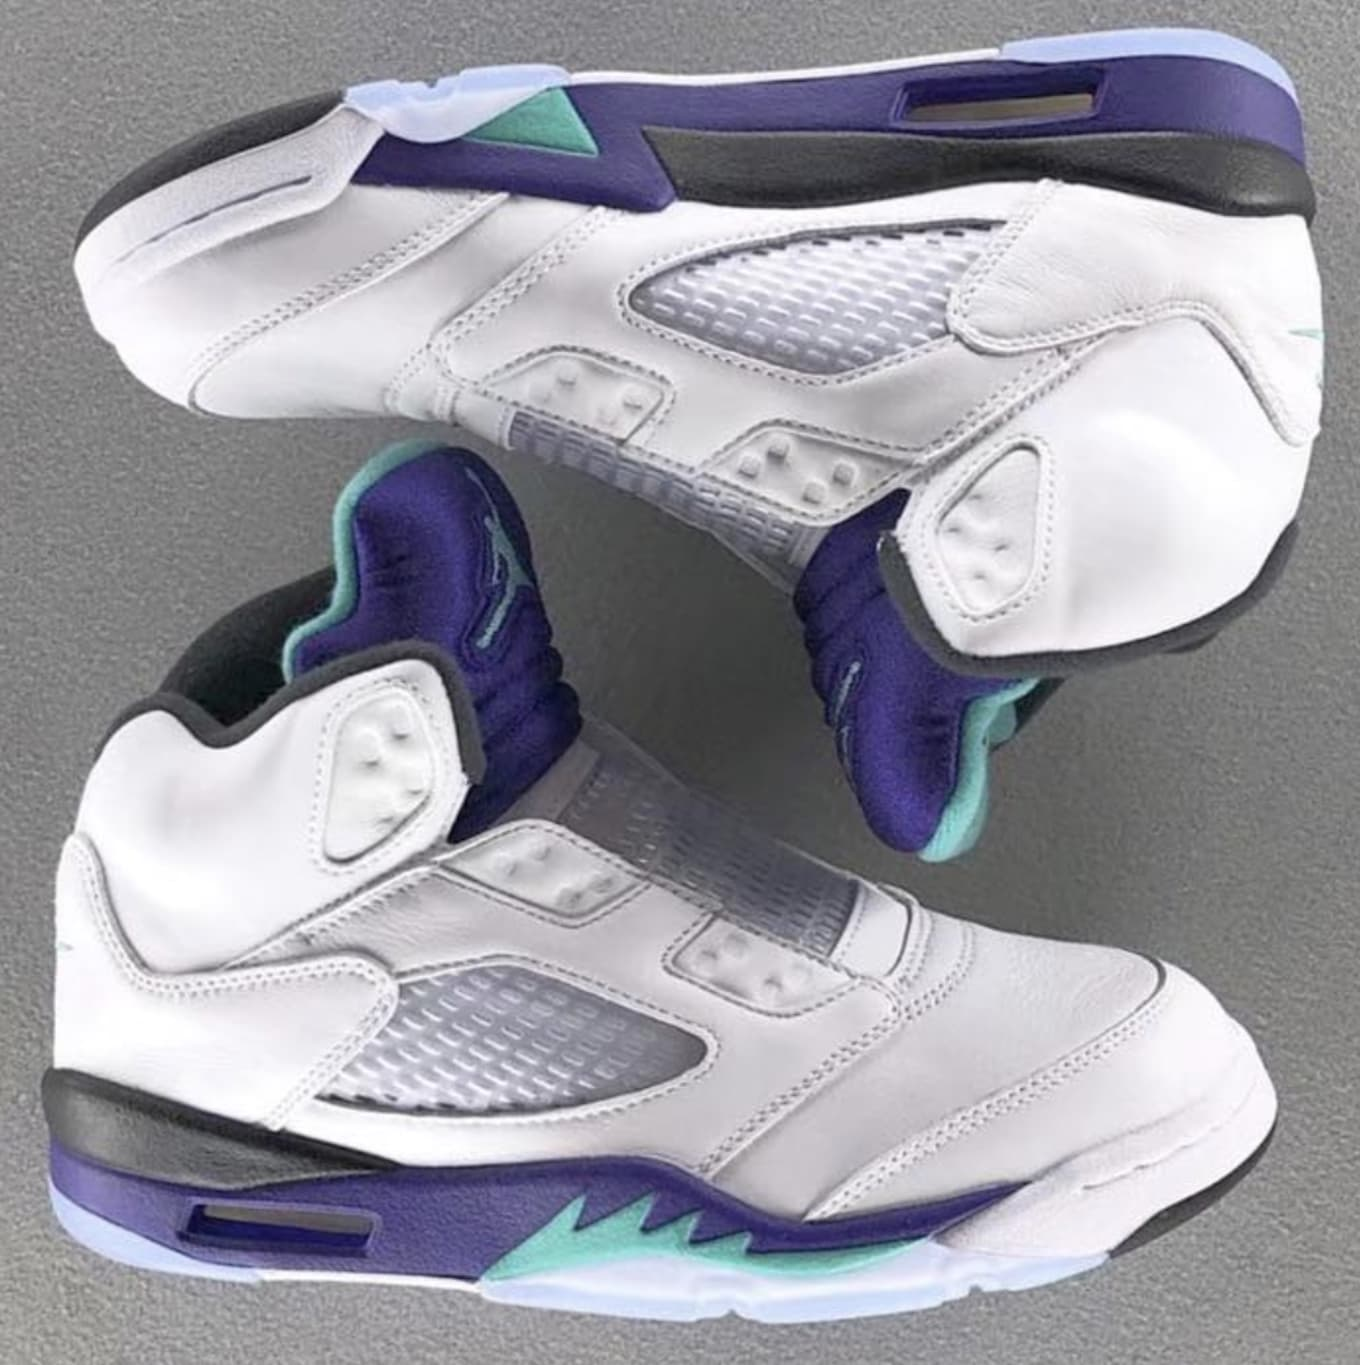 78abd445f8ec Air Jordan V 5 Retro NRG  White Grape Ice Black New Emerald  2018 ...